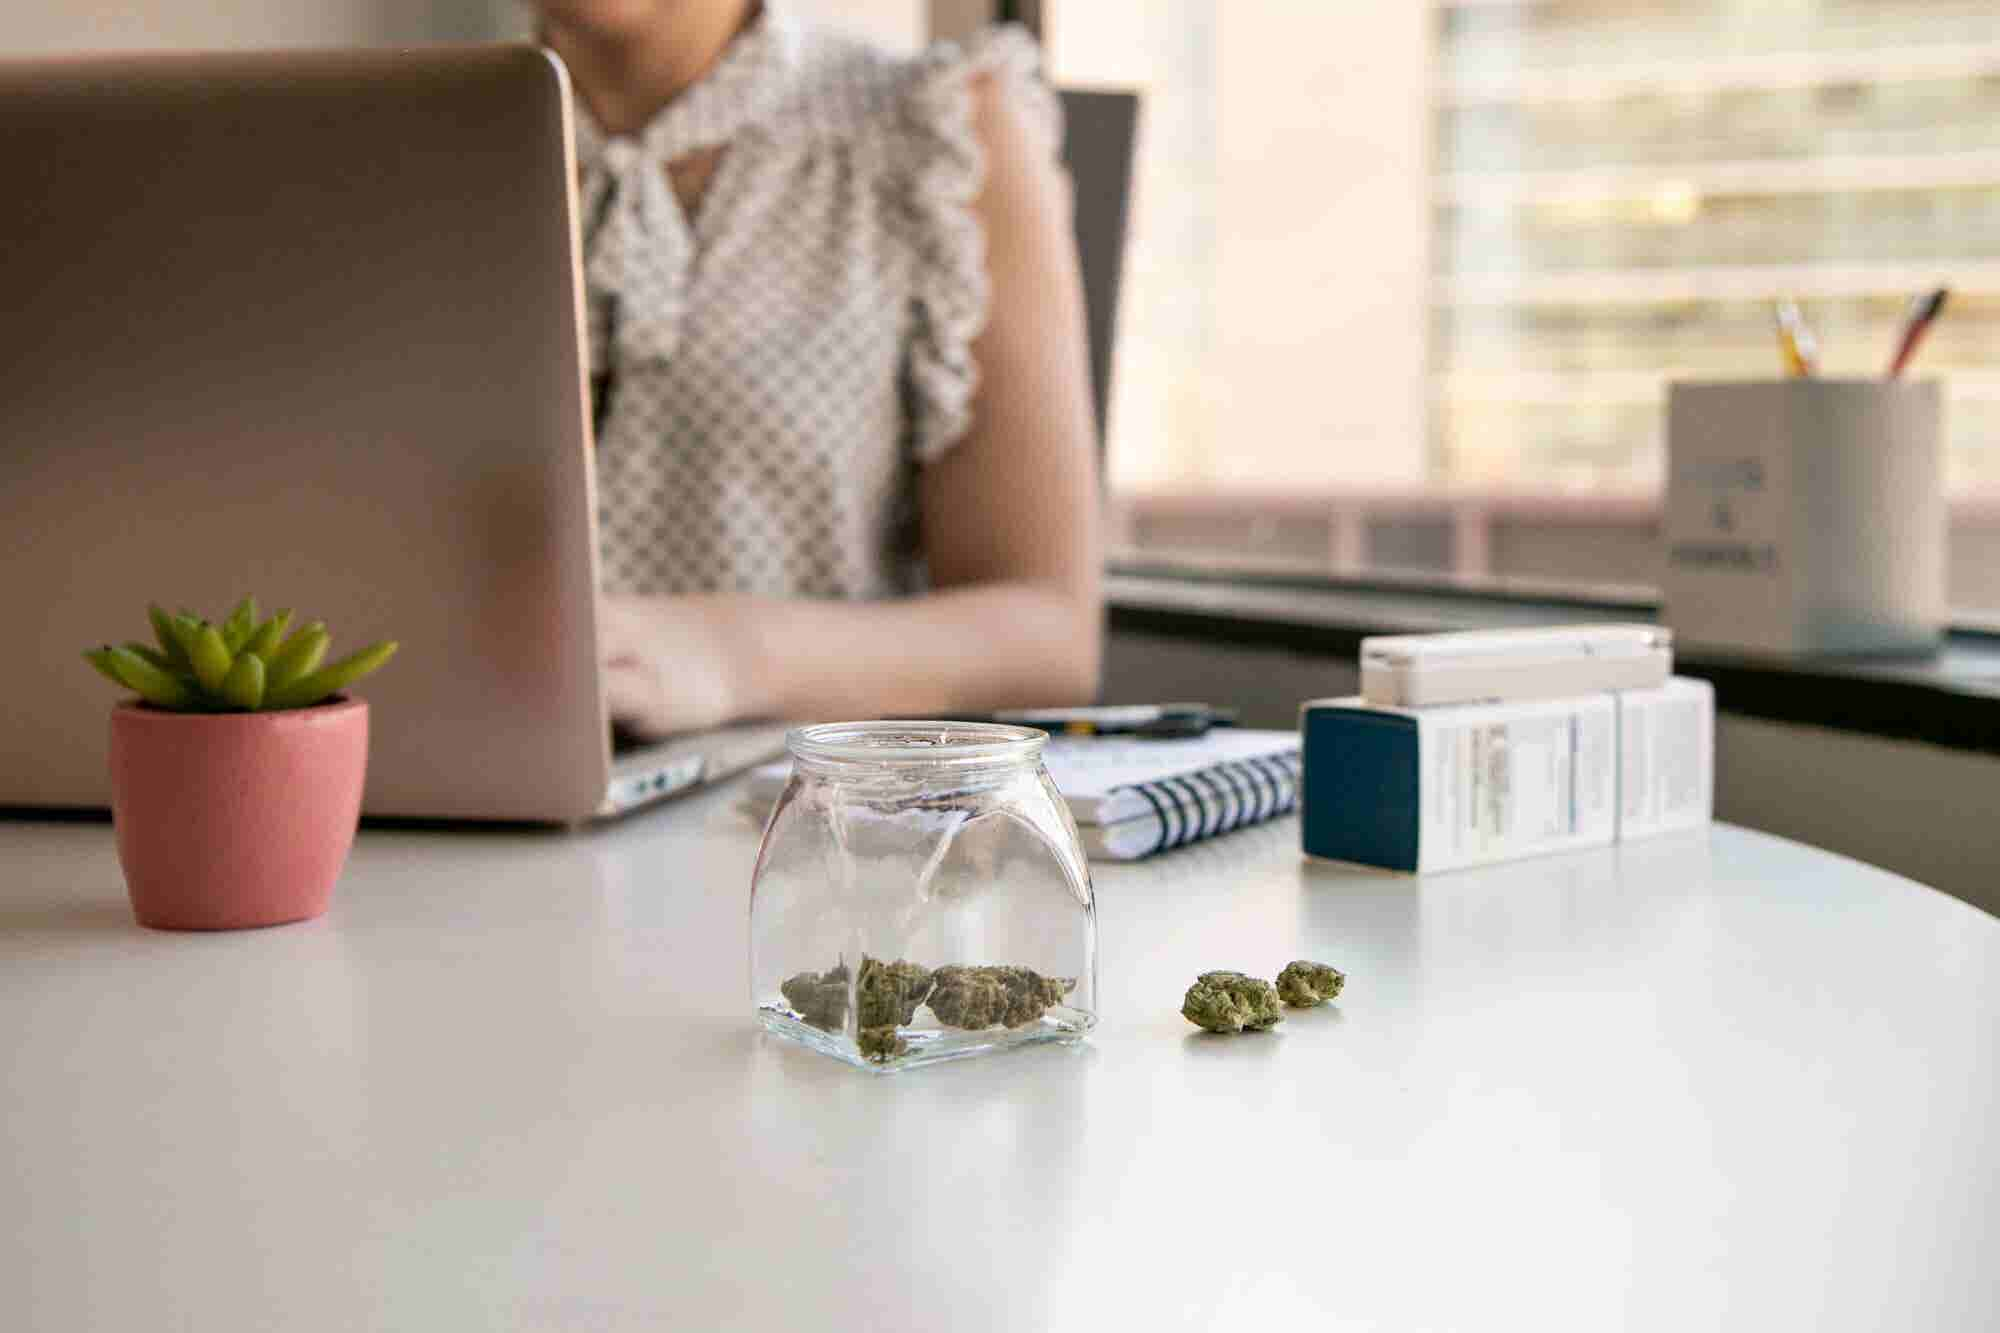 We Need to Clear the Smoke About Cannabis in the Workplace